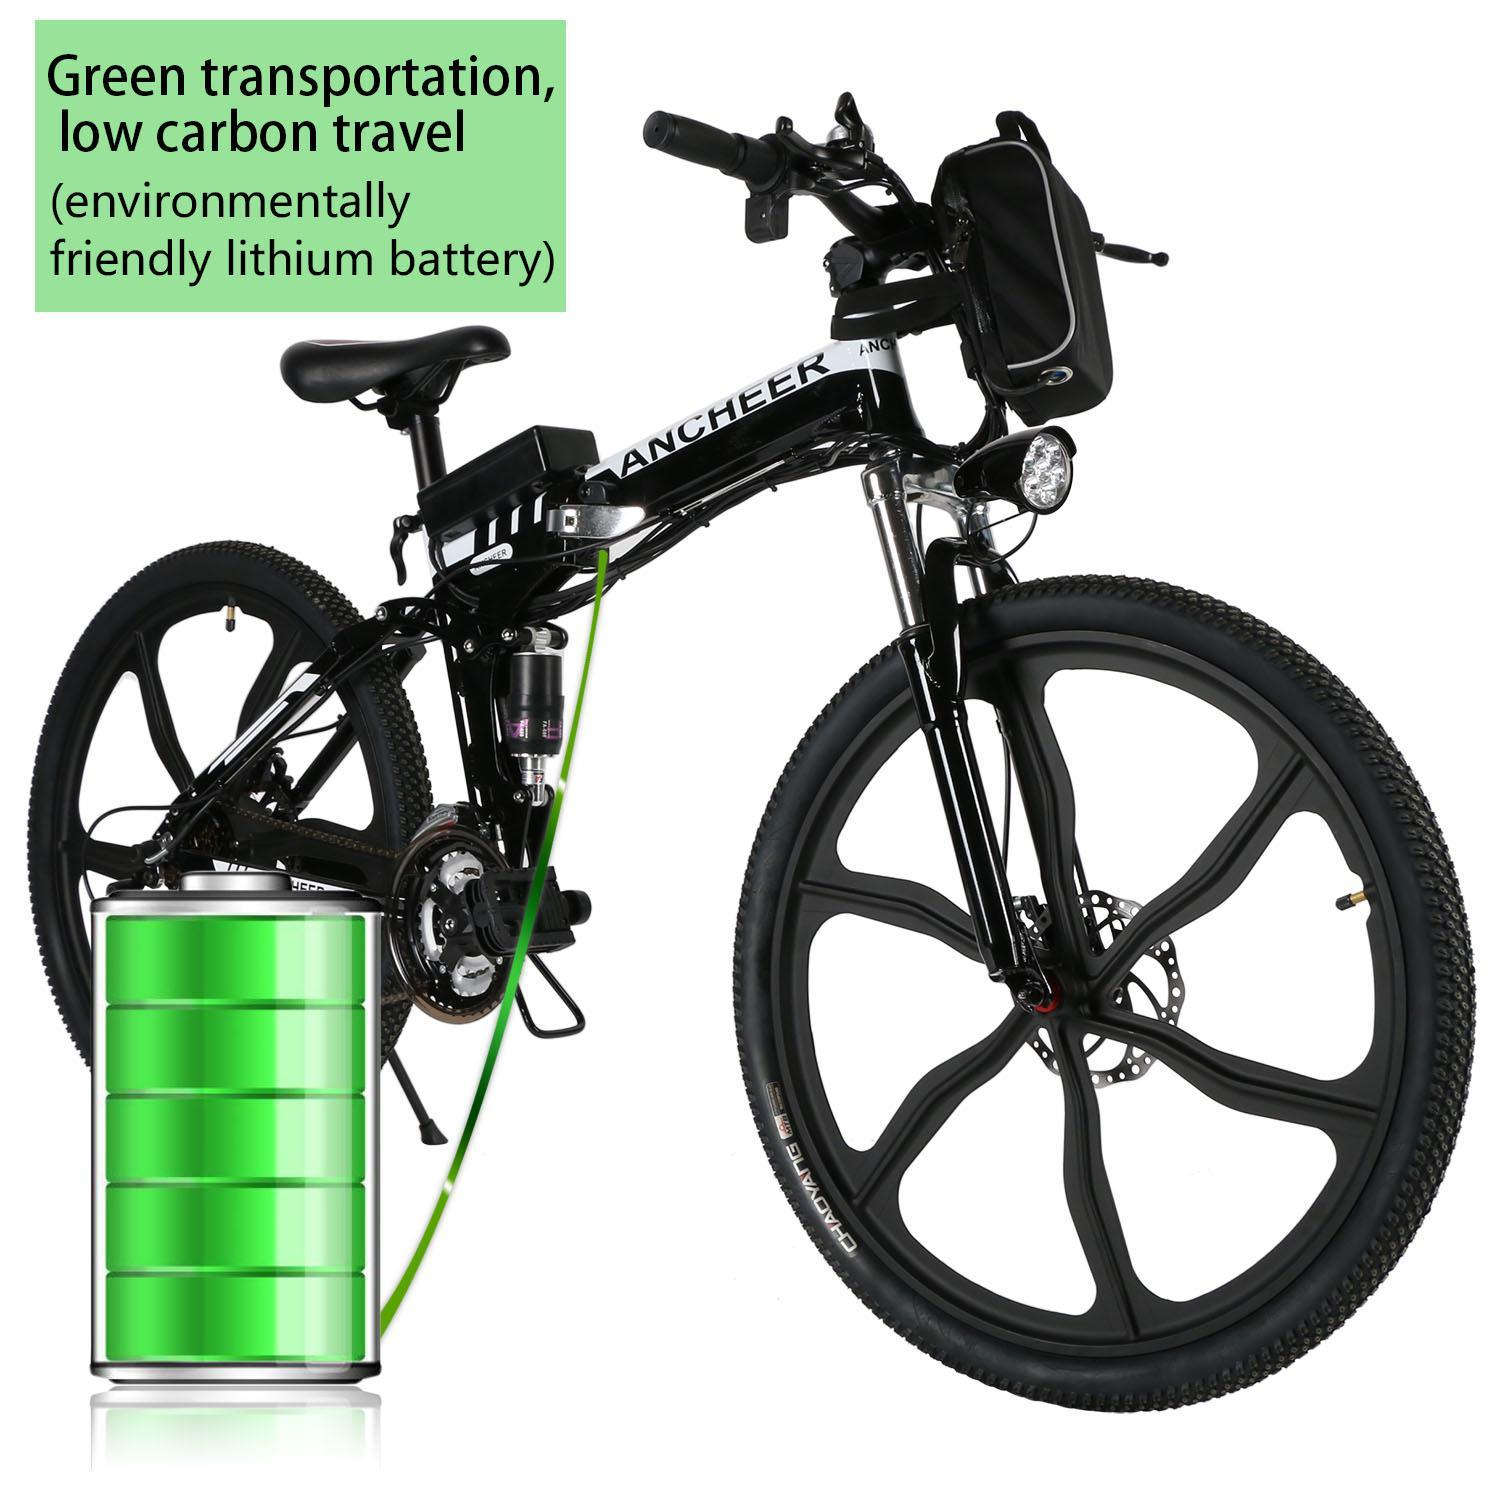 """Lowest Price Ever! 30km/H 26"""" Folding Electric Mountain Bike,27 Speed 36 V Electric Bike W/Lithium Battery by Walmart"""